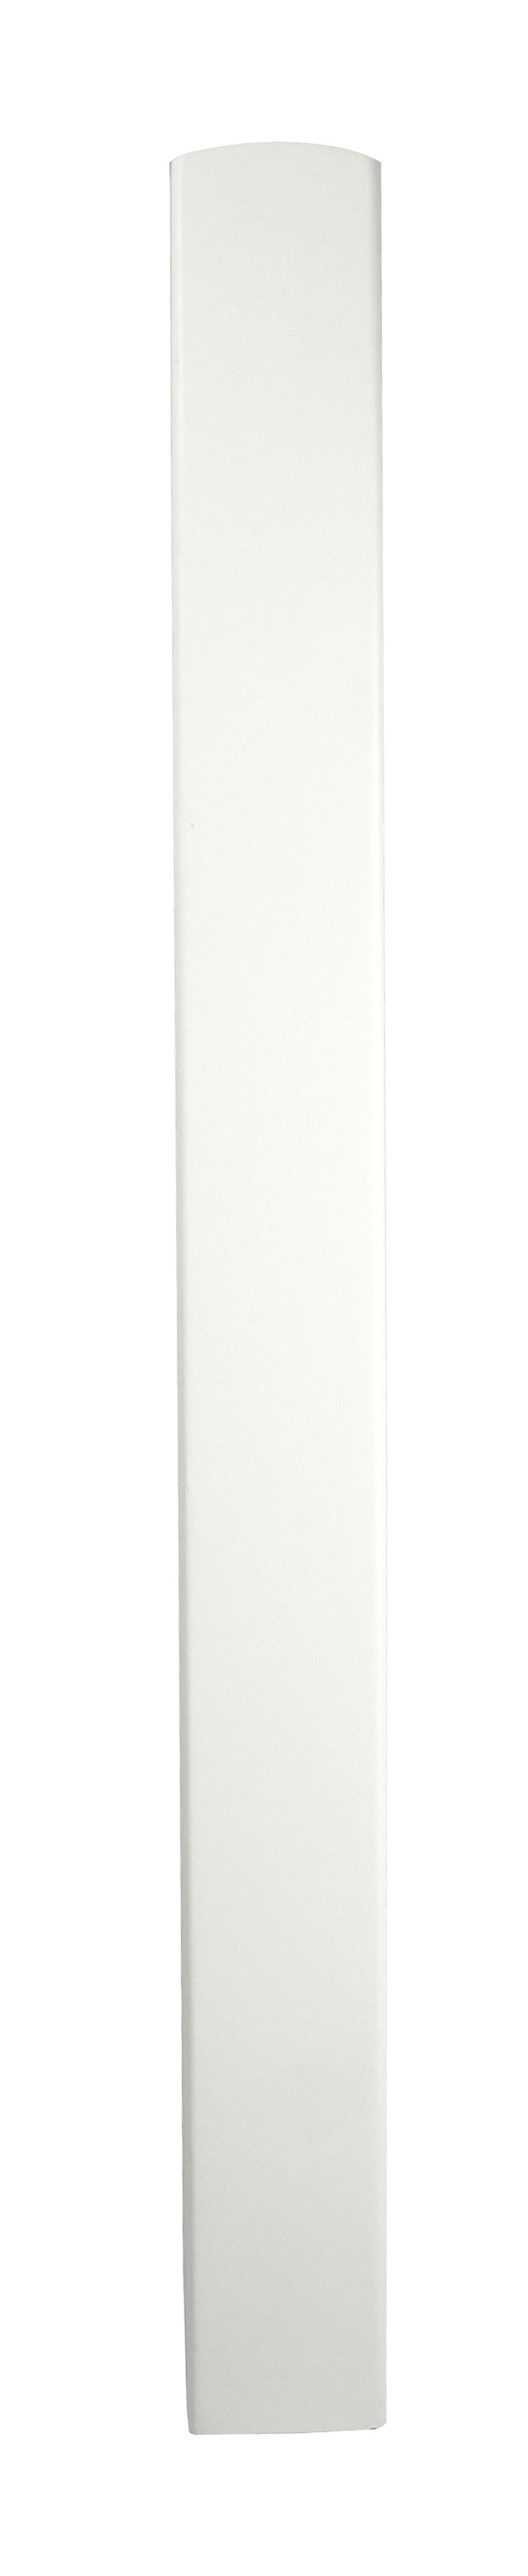 1 White Newel Base 700 90